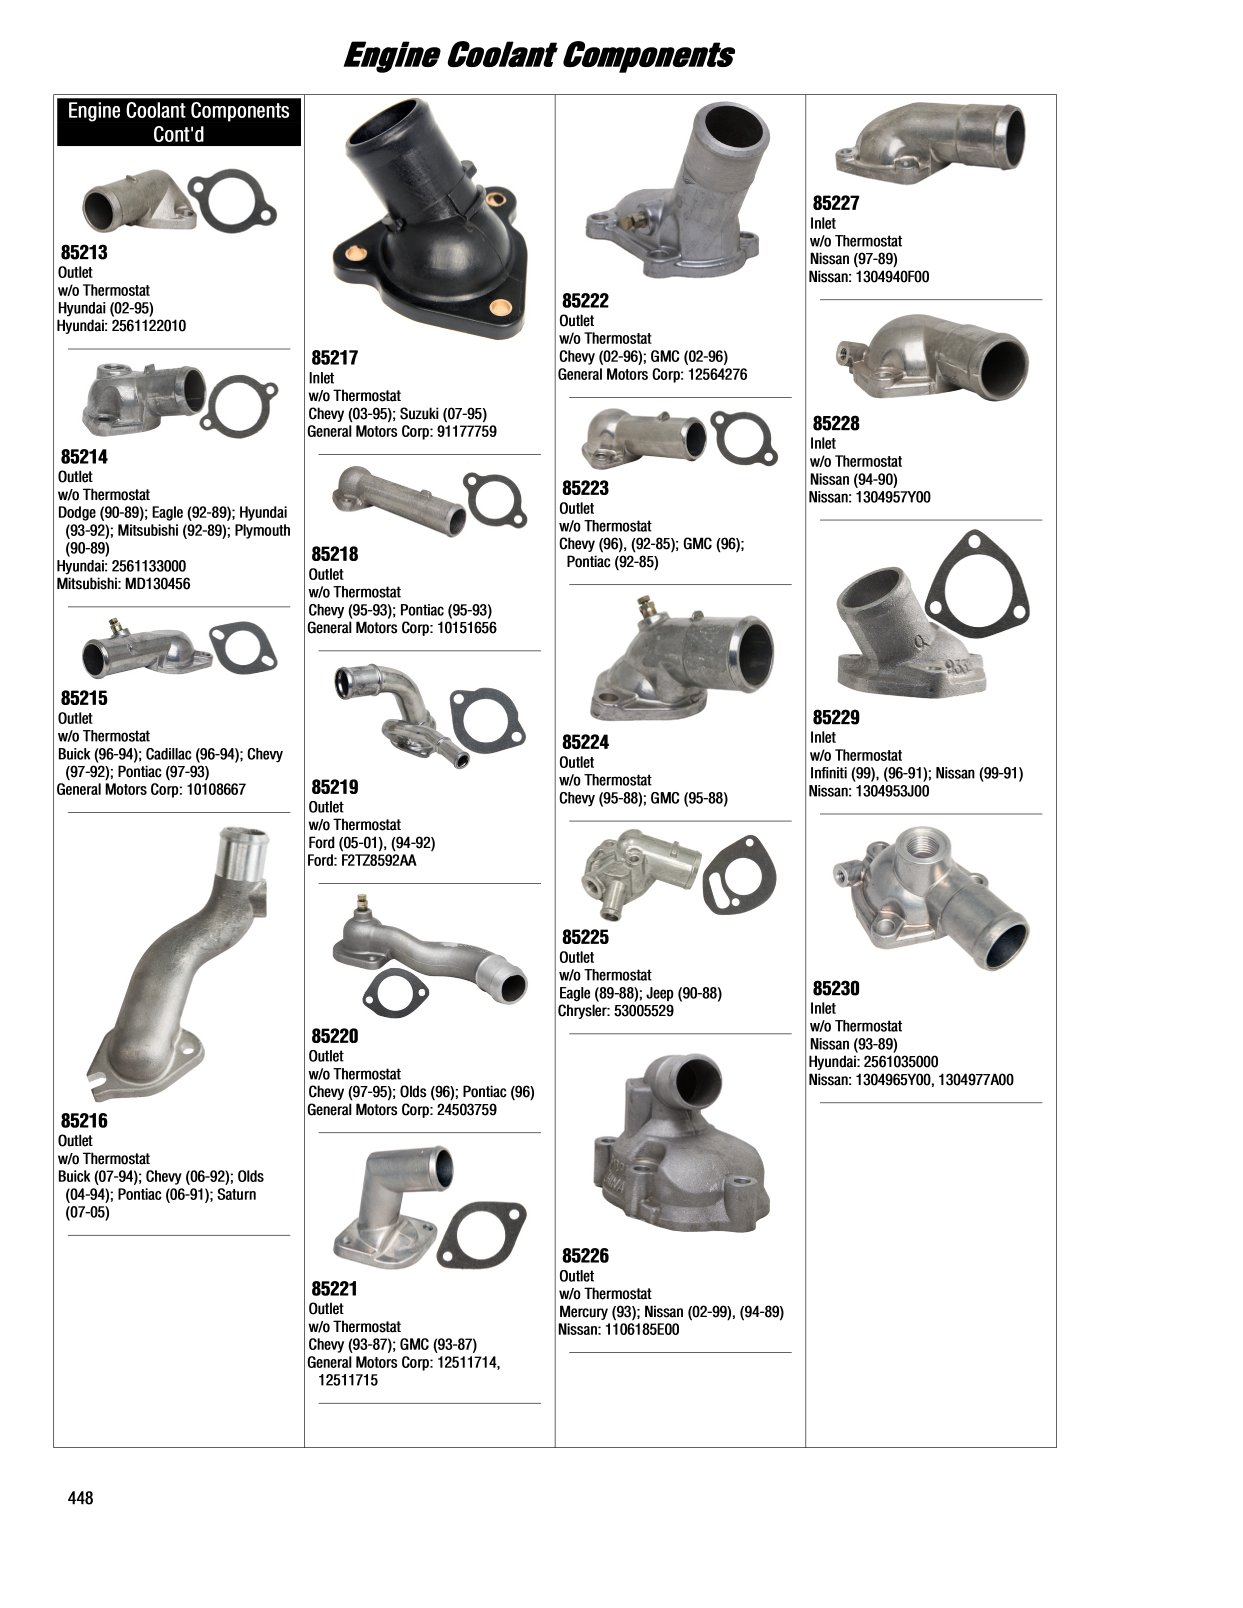 Engine Coolant Components 2017 Illustrated Guide Page 448 Pontiac